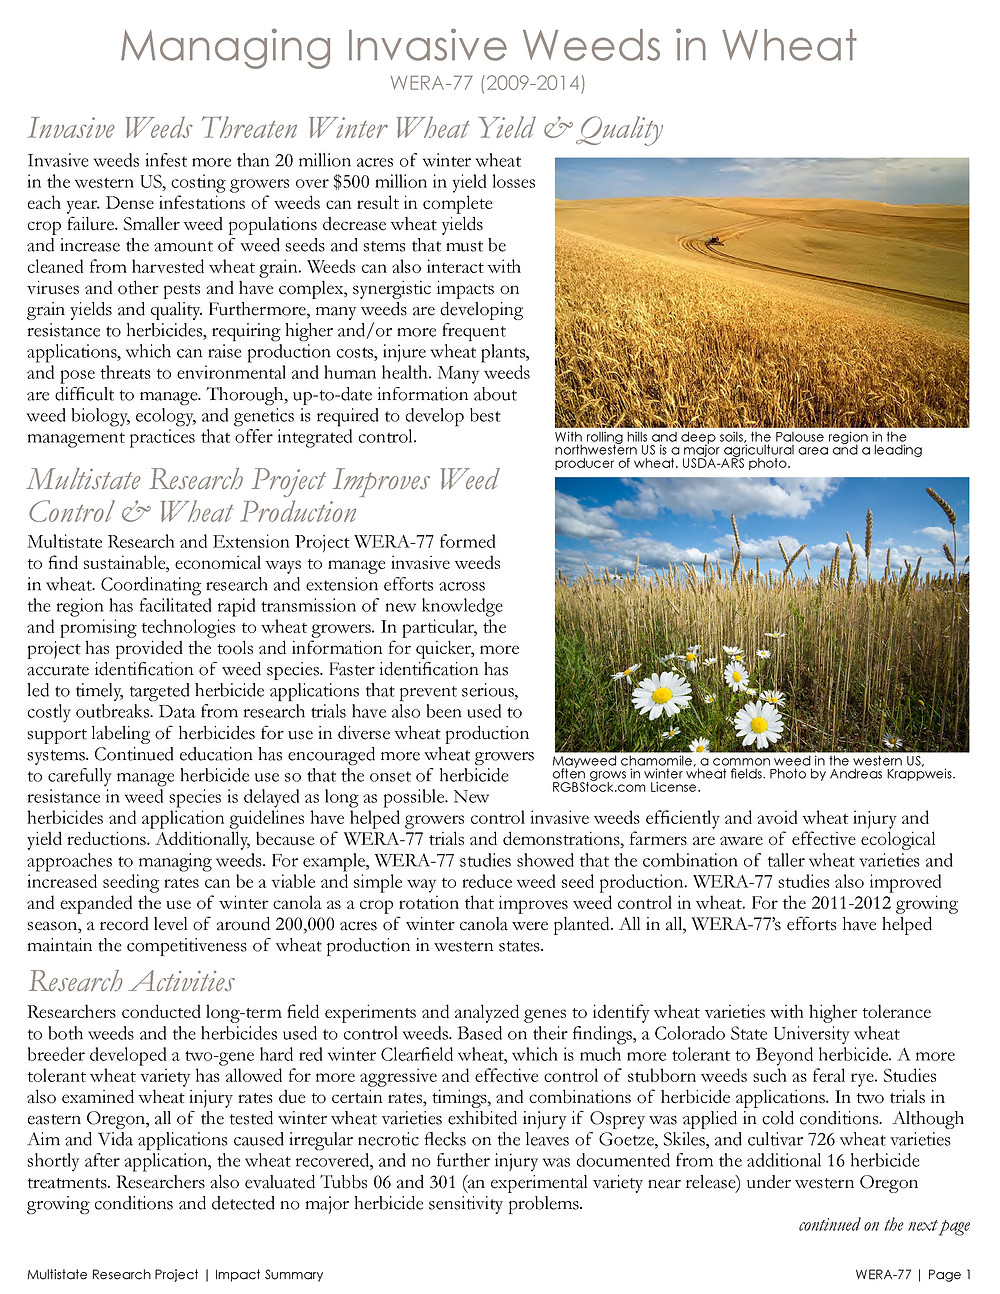 Click to view and/or download a PDF of the Impact Statement